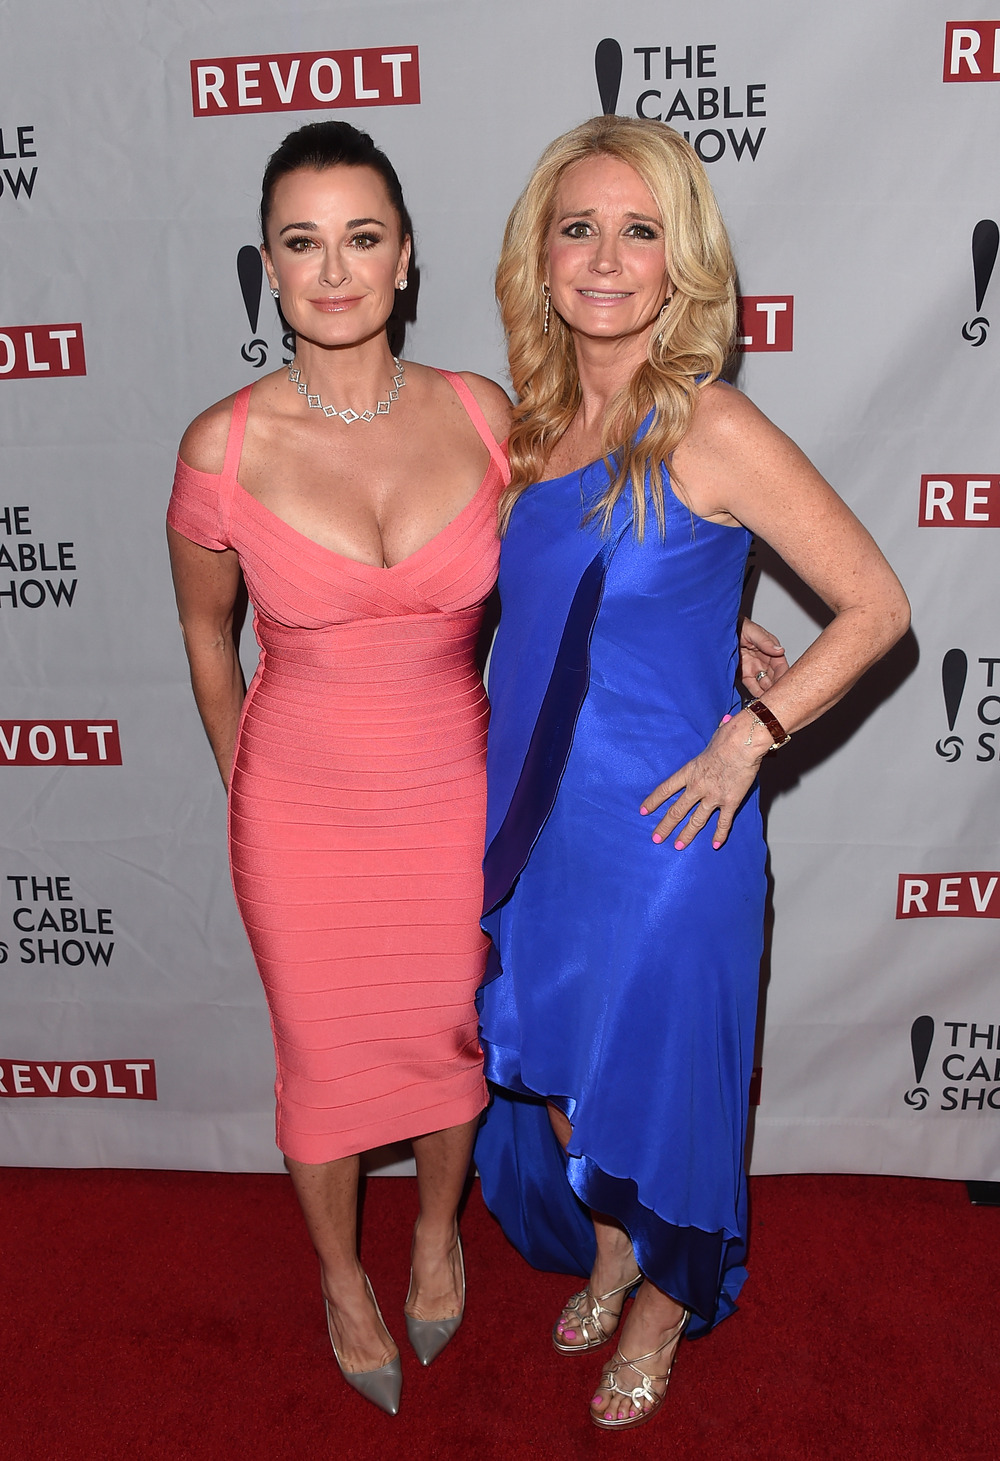 Kyle Richards and Kim Richards Party Together — Looking Good, Girls! (PHOTOS)